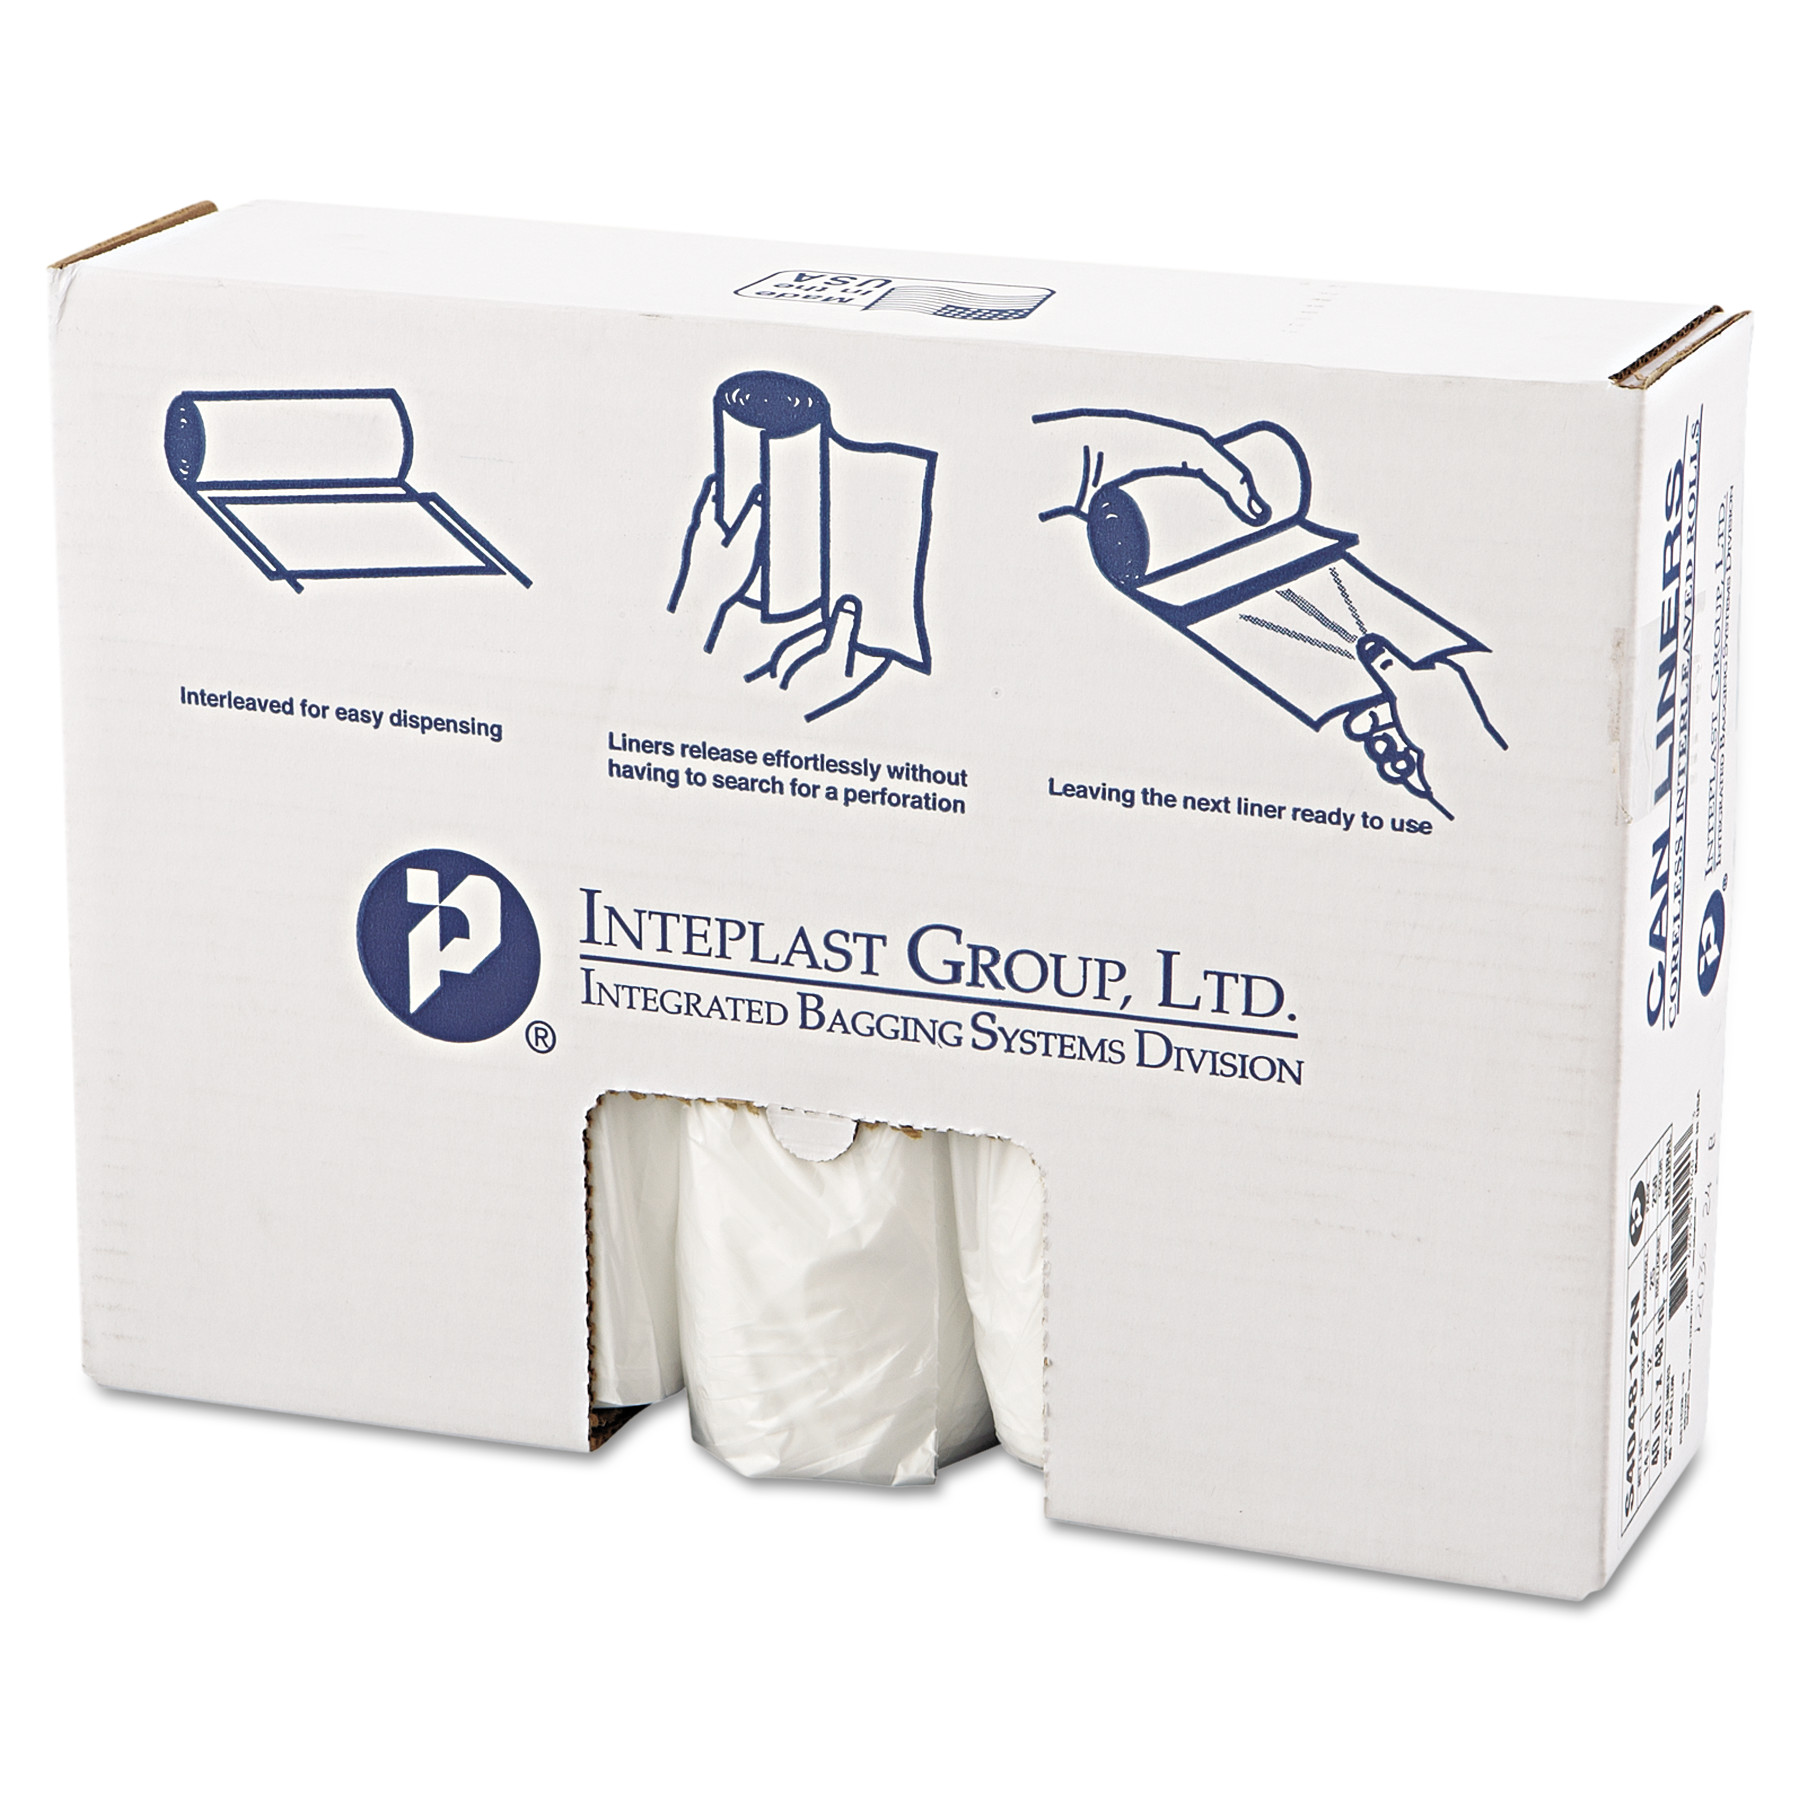 Inteplast Group High-Density Can Liners, 45 Gallon, Clear, 25 count, (Pack of 10)